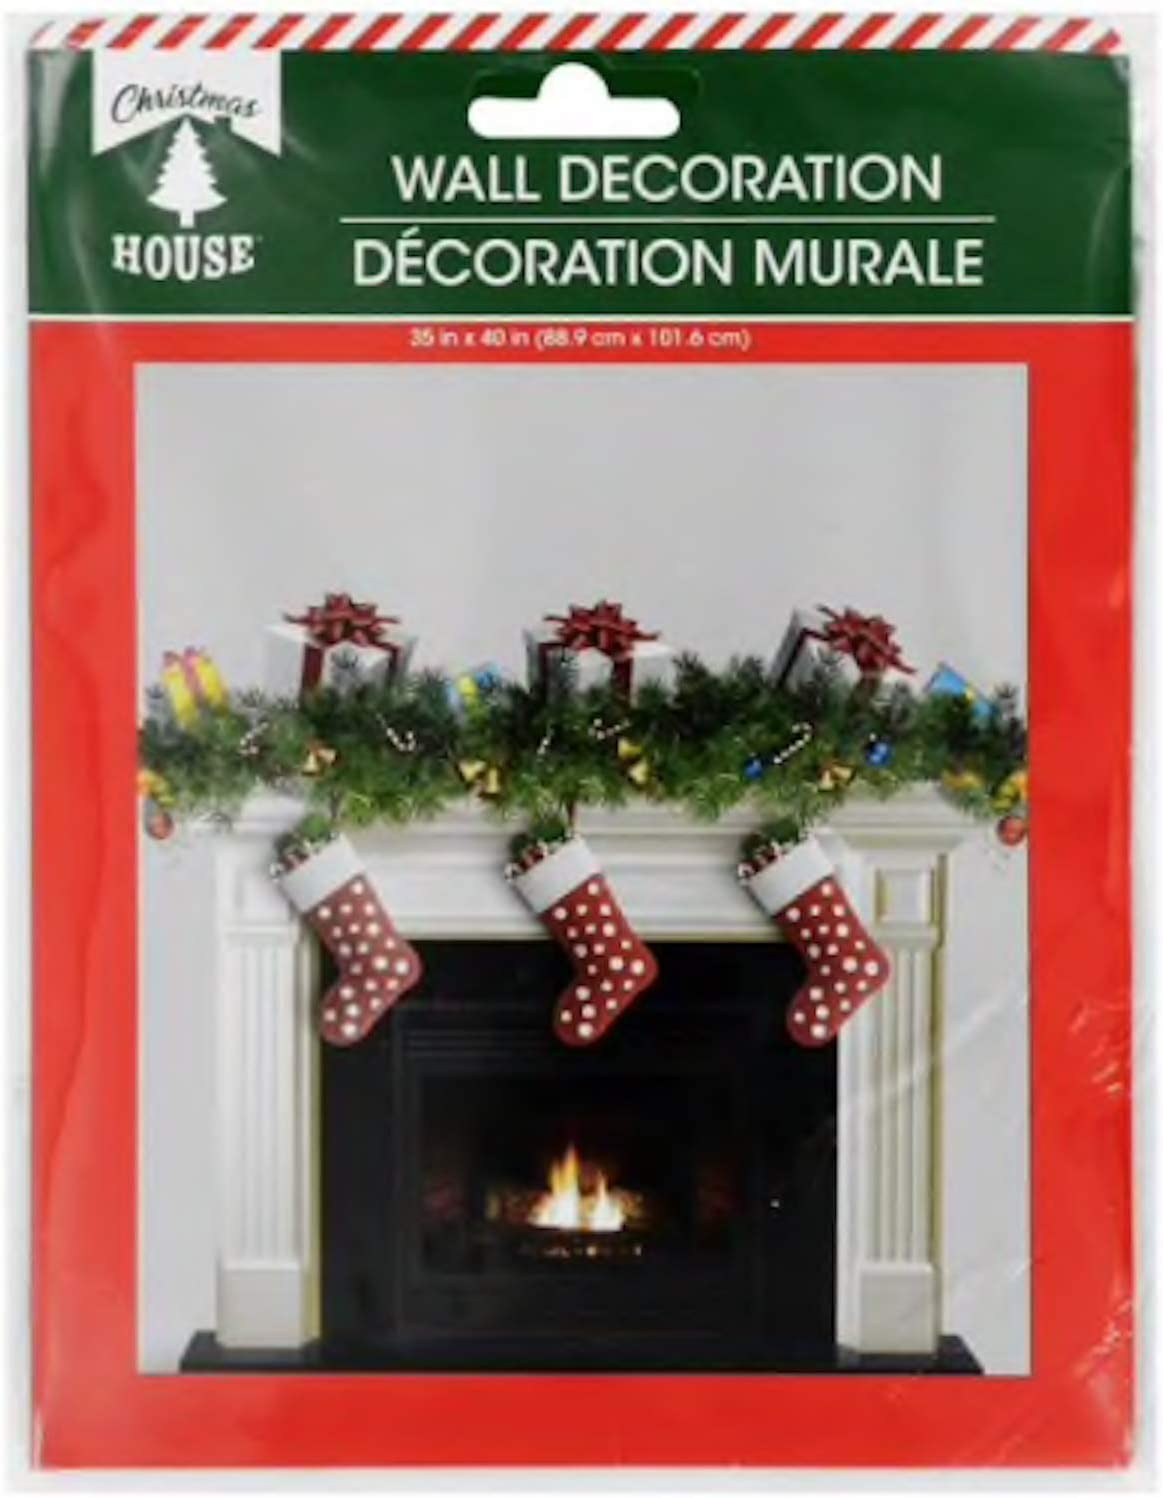 FIREPLACE STOCKINGS BACKDROP Christmas Party Decorations Holiday Wall Scene NEW